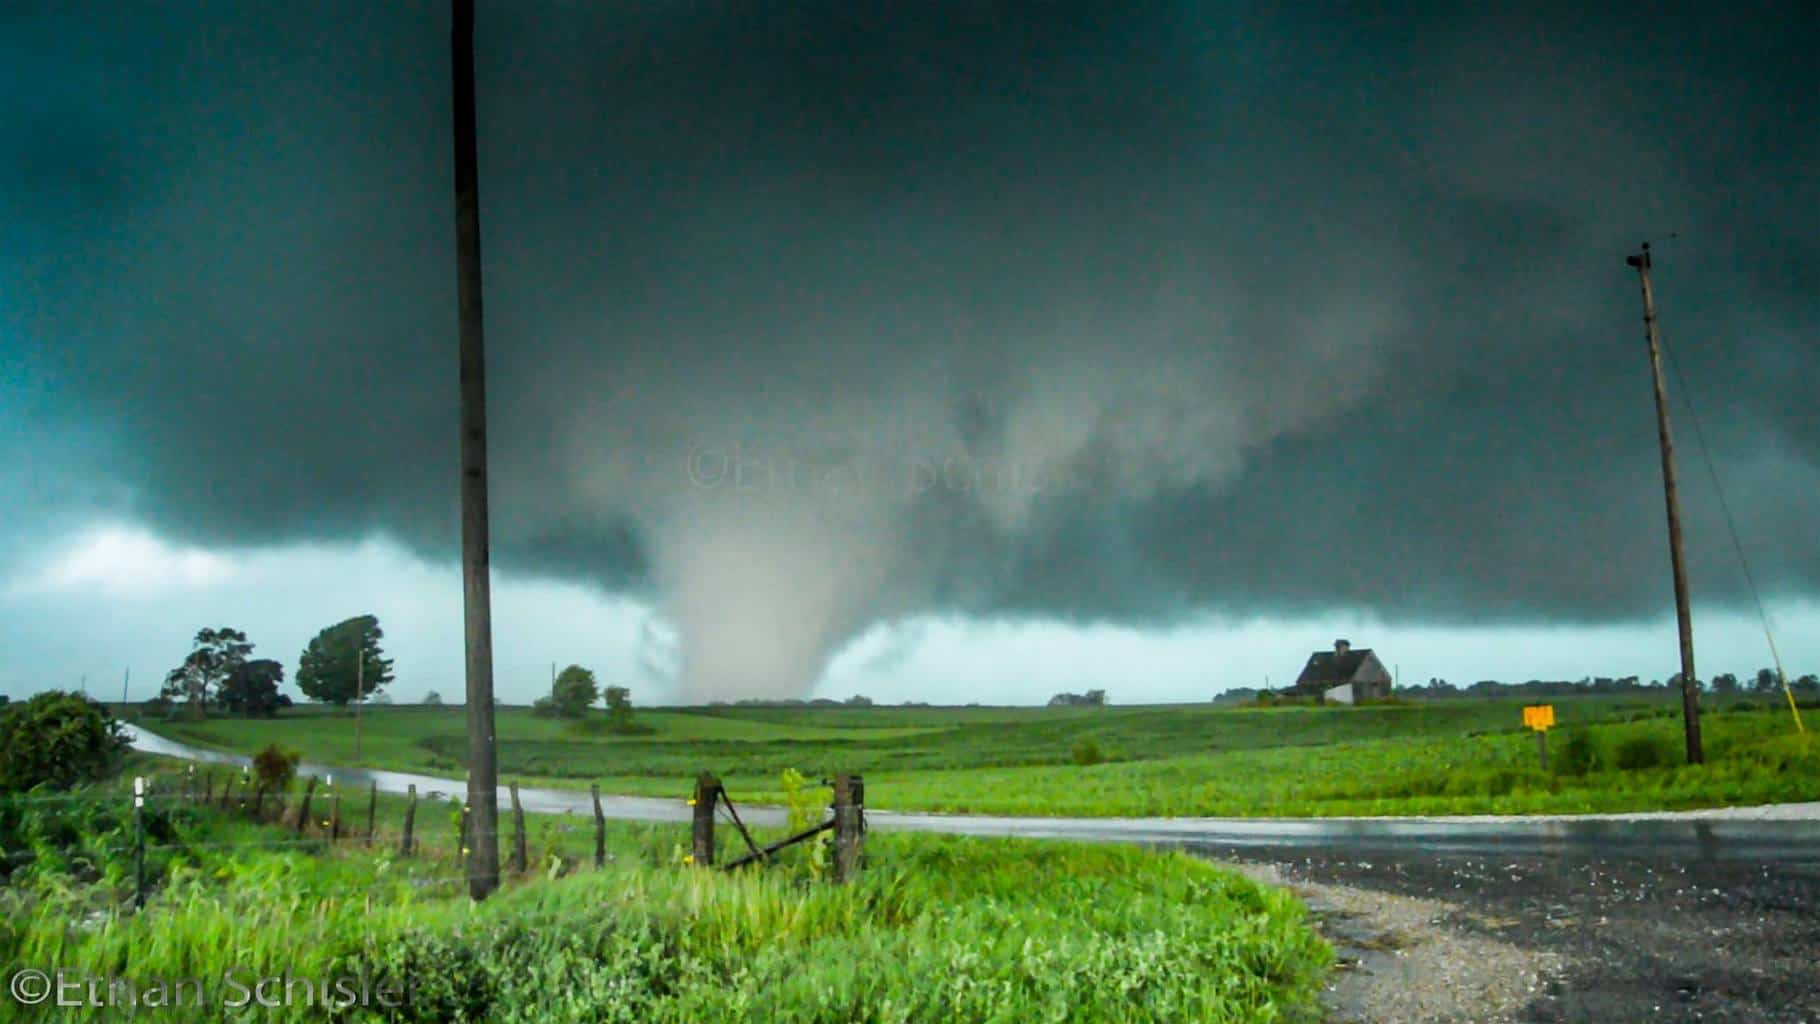 July 16, 2015 - Kirkwood, IL  Large beautiful tornado on the plains of Western Illinois. This was produced by a cyclic supercell that traveled from Burlington IA to nearly Galesburg, IL producing numerous tornadoes. This one, unlike the successor later on, stayed mainly over rural areas, however appeared quite visually intense. The last tornado of this event hit just less than 8 miles from my home! What a crazy day.